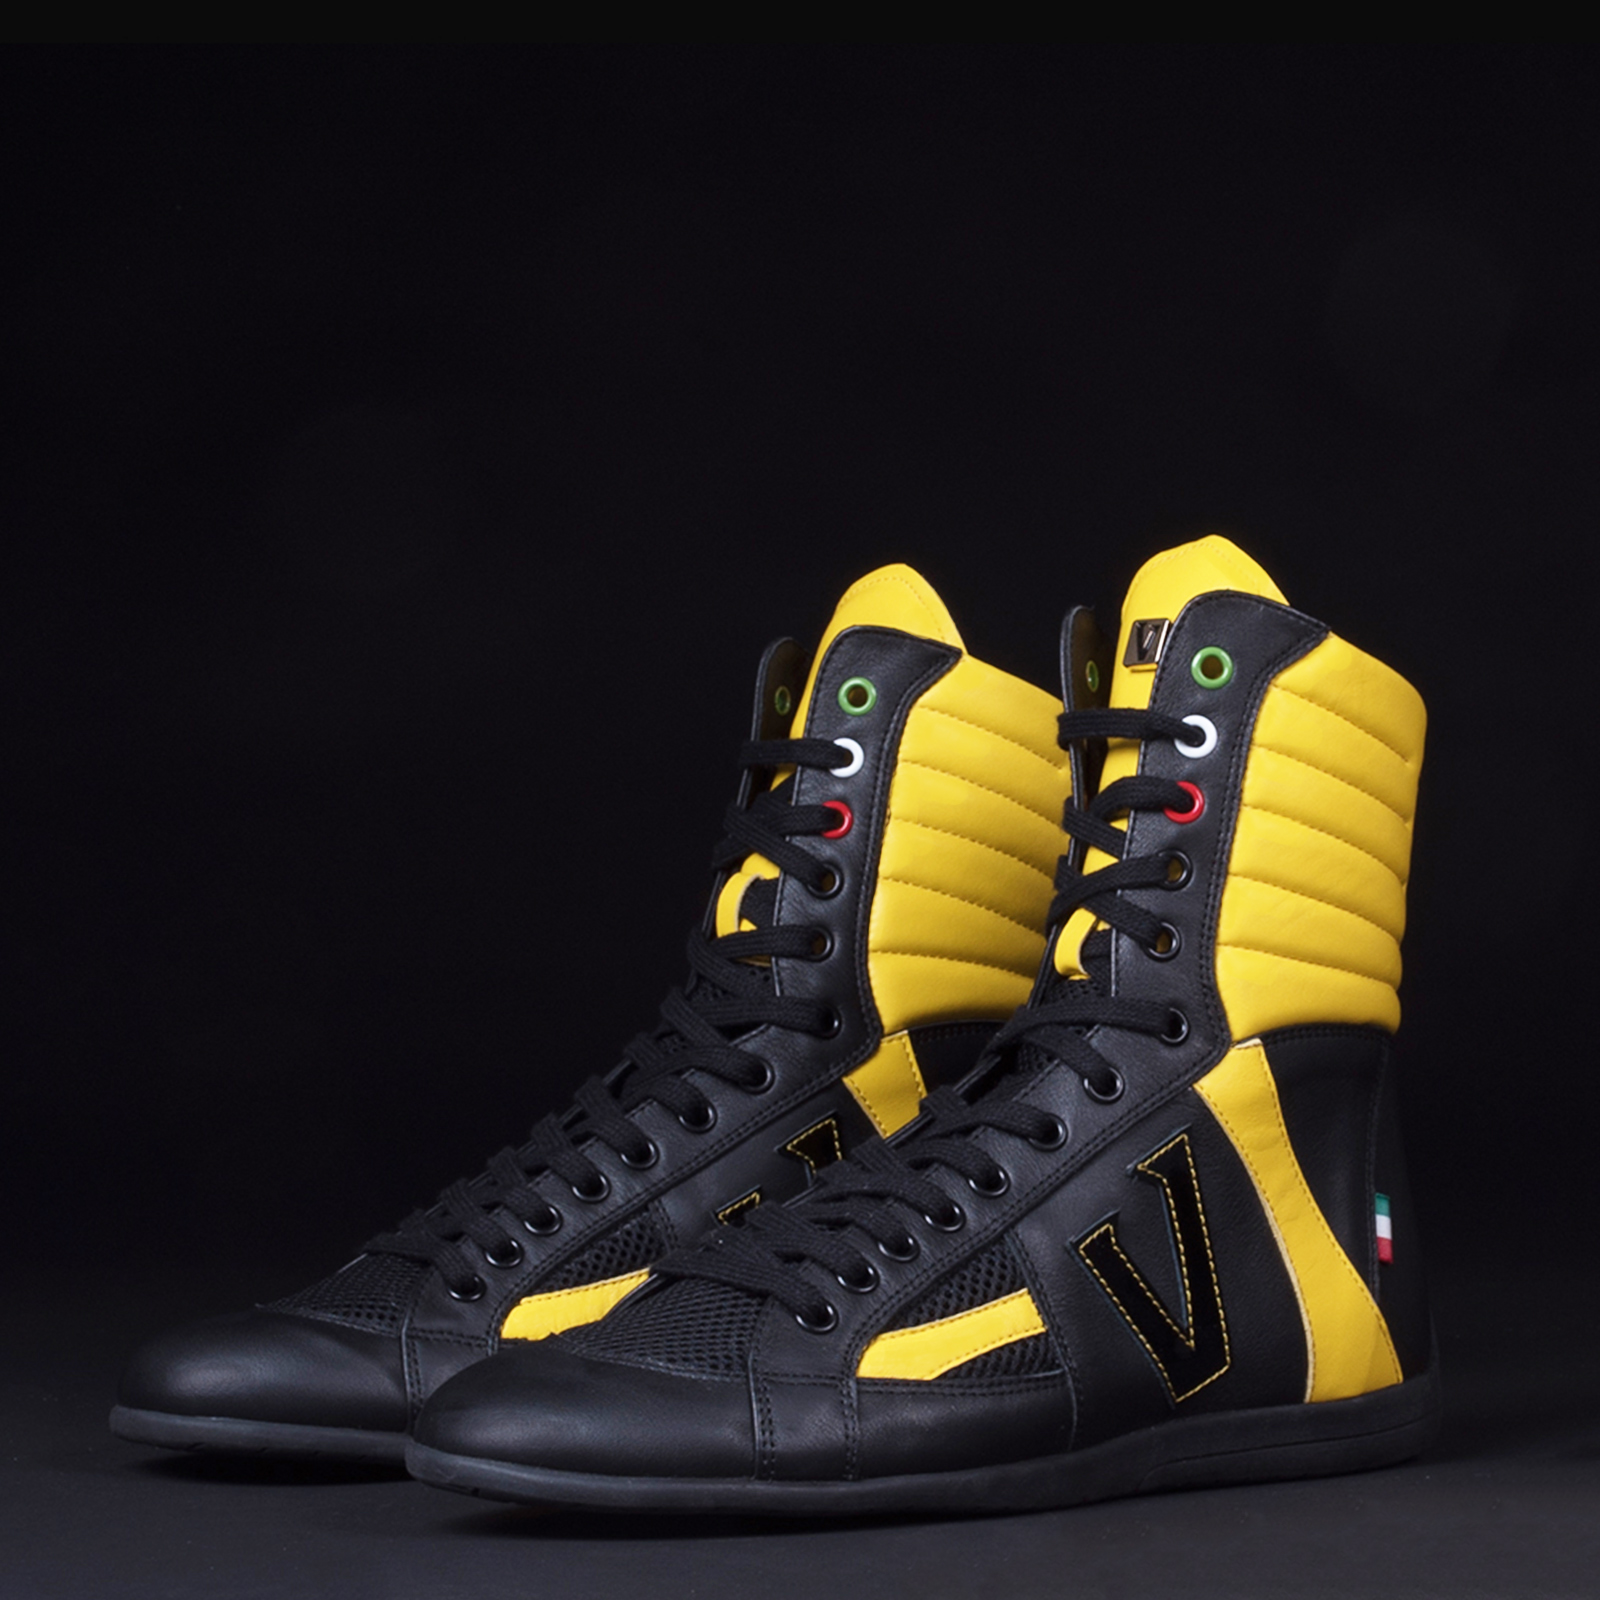 High Top Boxing Shoes for Women and Men